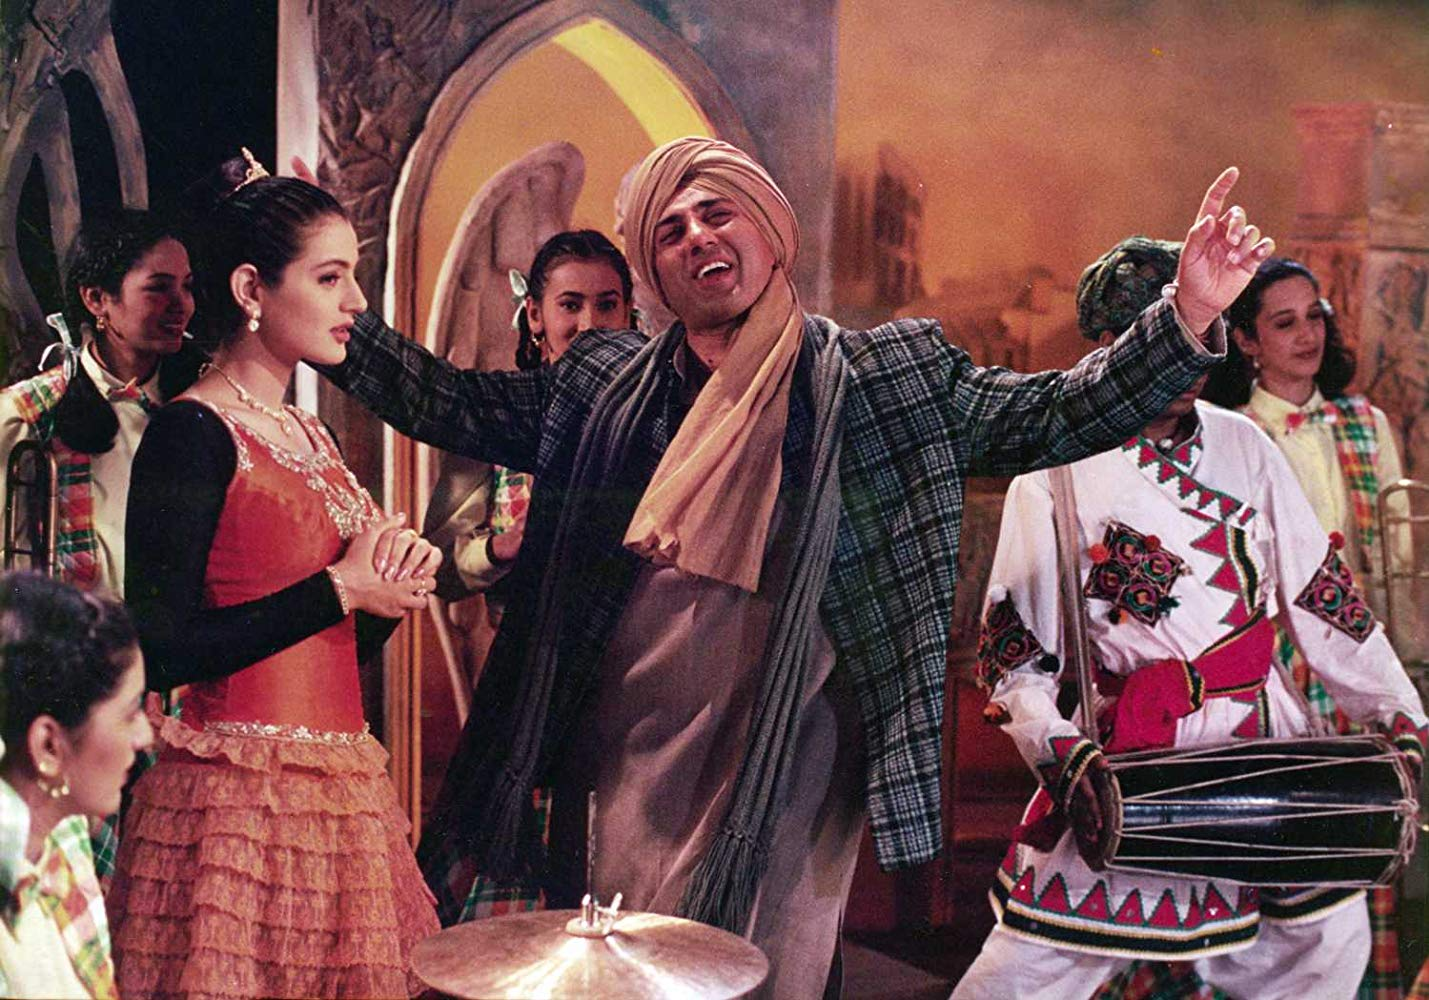 Sunny Deol and Ameesha Patel